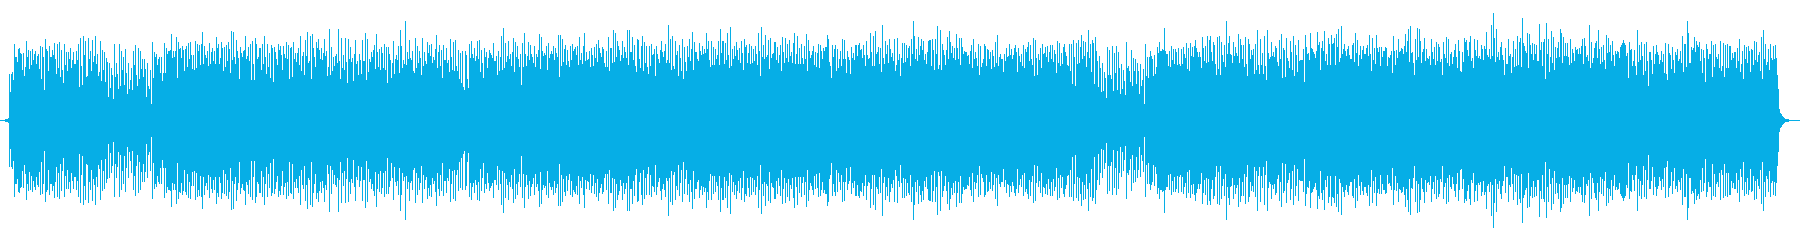 Akogi live music's reproduced waveform